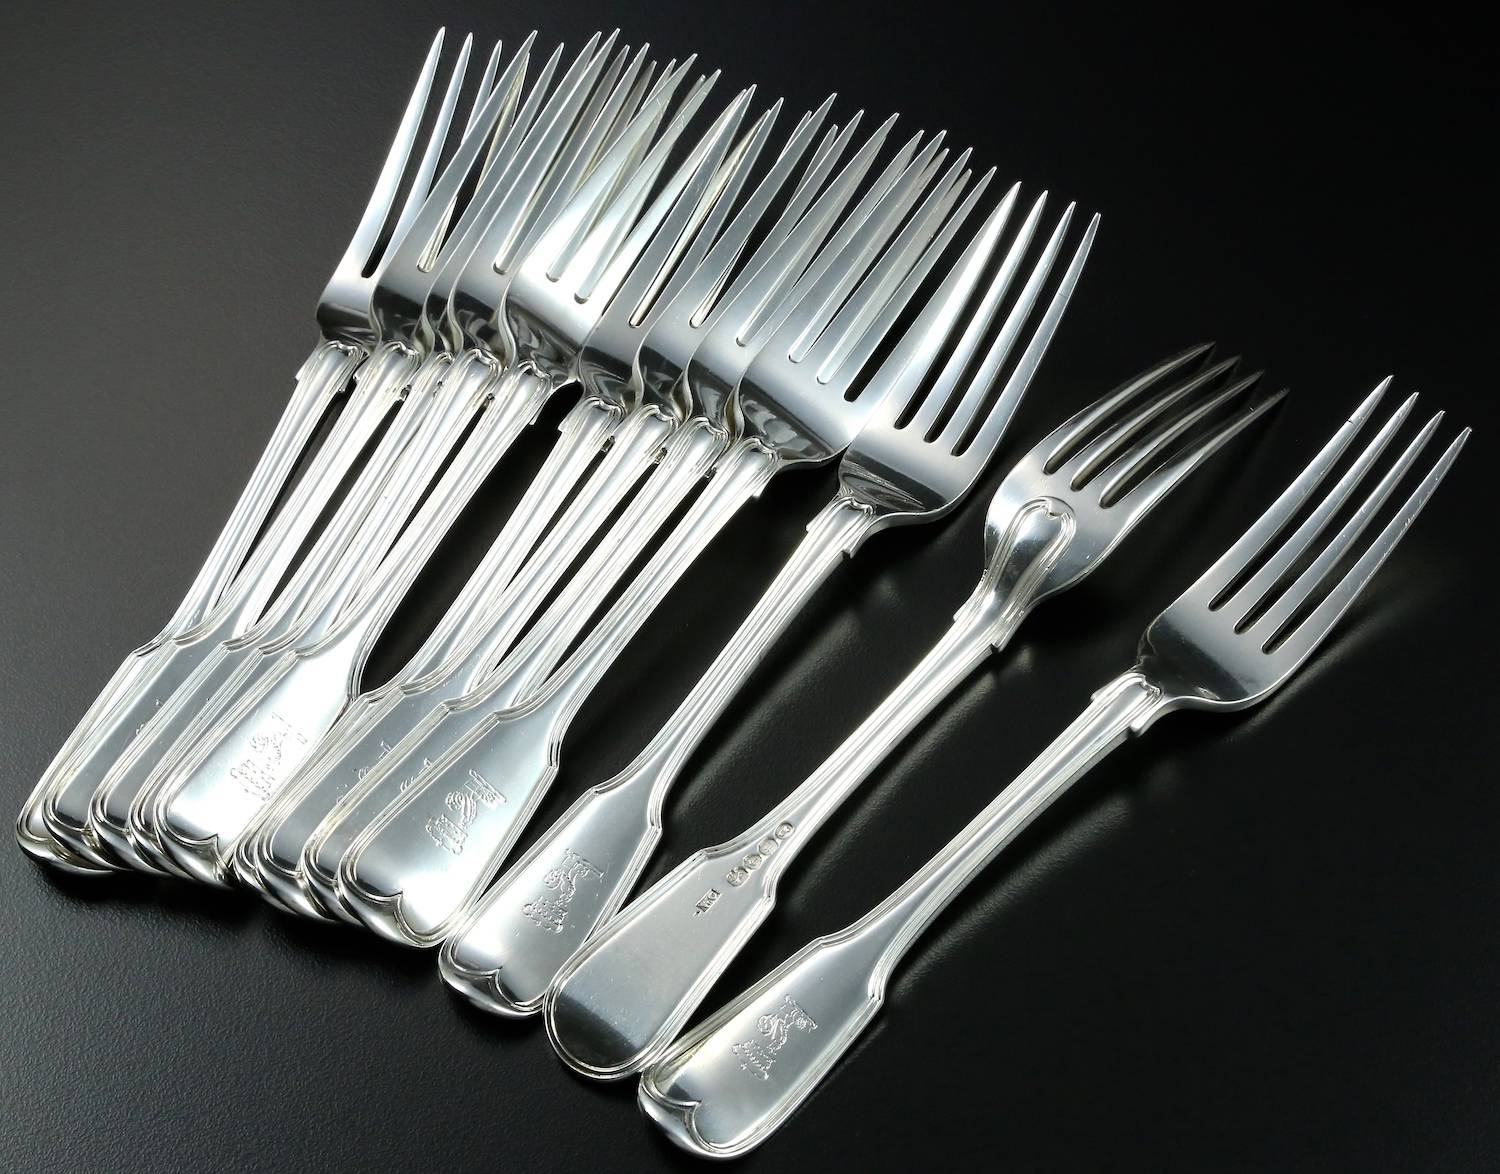 Fiddle + Thread silver dinner forks